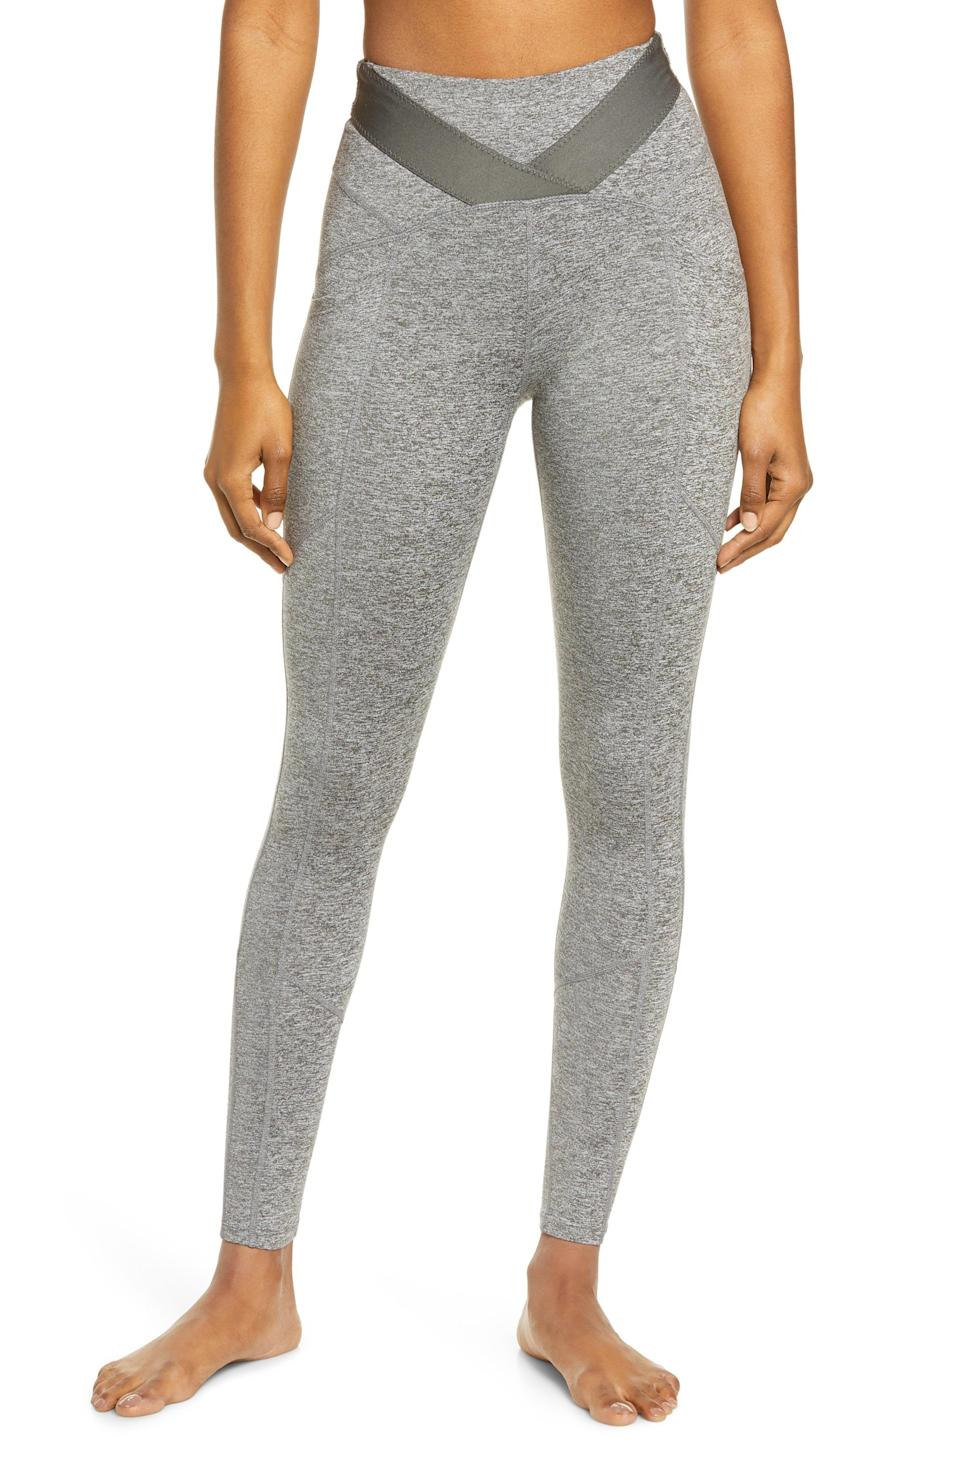 """<p><strong>FP MOVEMENT</strong></p><p>nordstrom.com</p><p><strong>$64.80</strong></p><p><a href=""""https://go.redirectingat.com?id=74968X1596630&url=https%3A%2F%2Fwww.nordstrom.com%2Fs%2Ffree-people-fp-movement-just-breathe-high-waist-pocket-leggings%2F6116943&sref=https%3A%2F%2Fwww.womenshealthmag.com%2Flife%2Fg36999215%2Fviral-tiktok-items-nordstrom-sale%2F"""" rel=""""nofollow noopener"""" target=""""_blank"""" data-ylk=""""slk:Shop Now"""" class=""""link rapid-noclick-resp"""">Shop Now</a></p><p>You already have a gorgeous bod, of course—but TikTok swears that the v-shaped design at the front of these leggings accentuates your natural curves in a way that'll make you feel more confident than ever. Plus, they're super breathable and the high, wide waistband offers tons of support.</p>"""